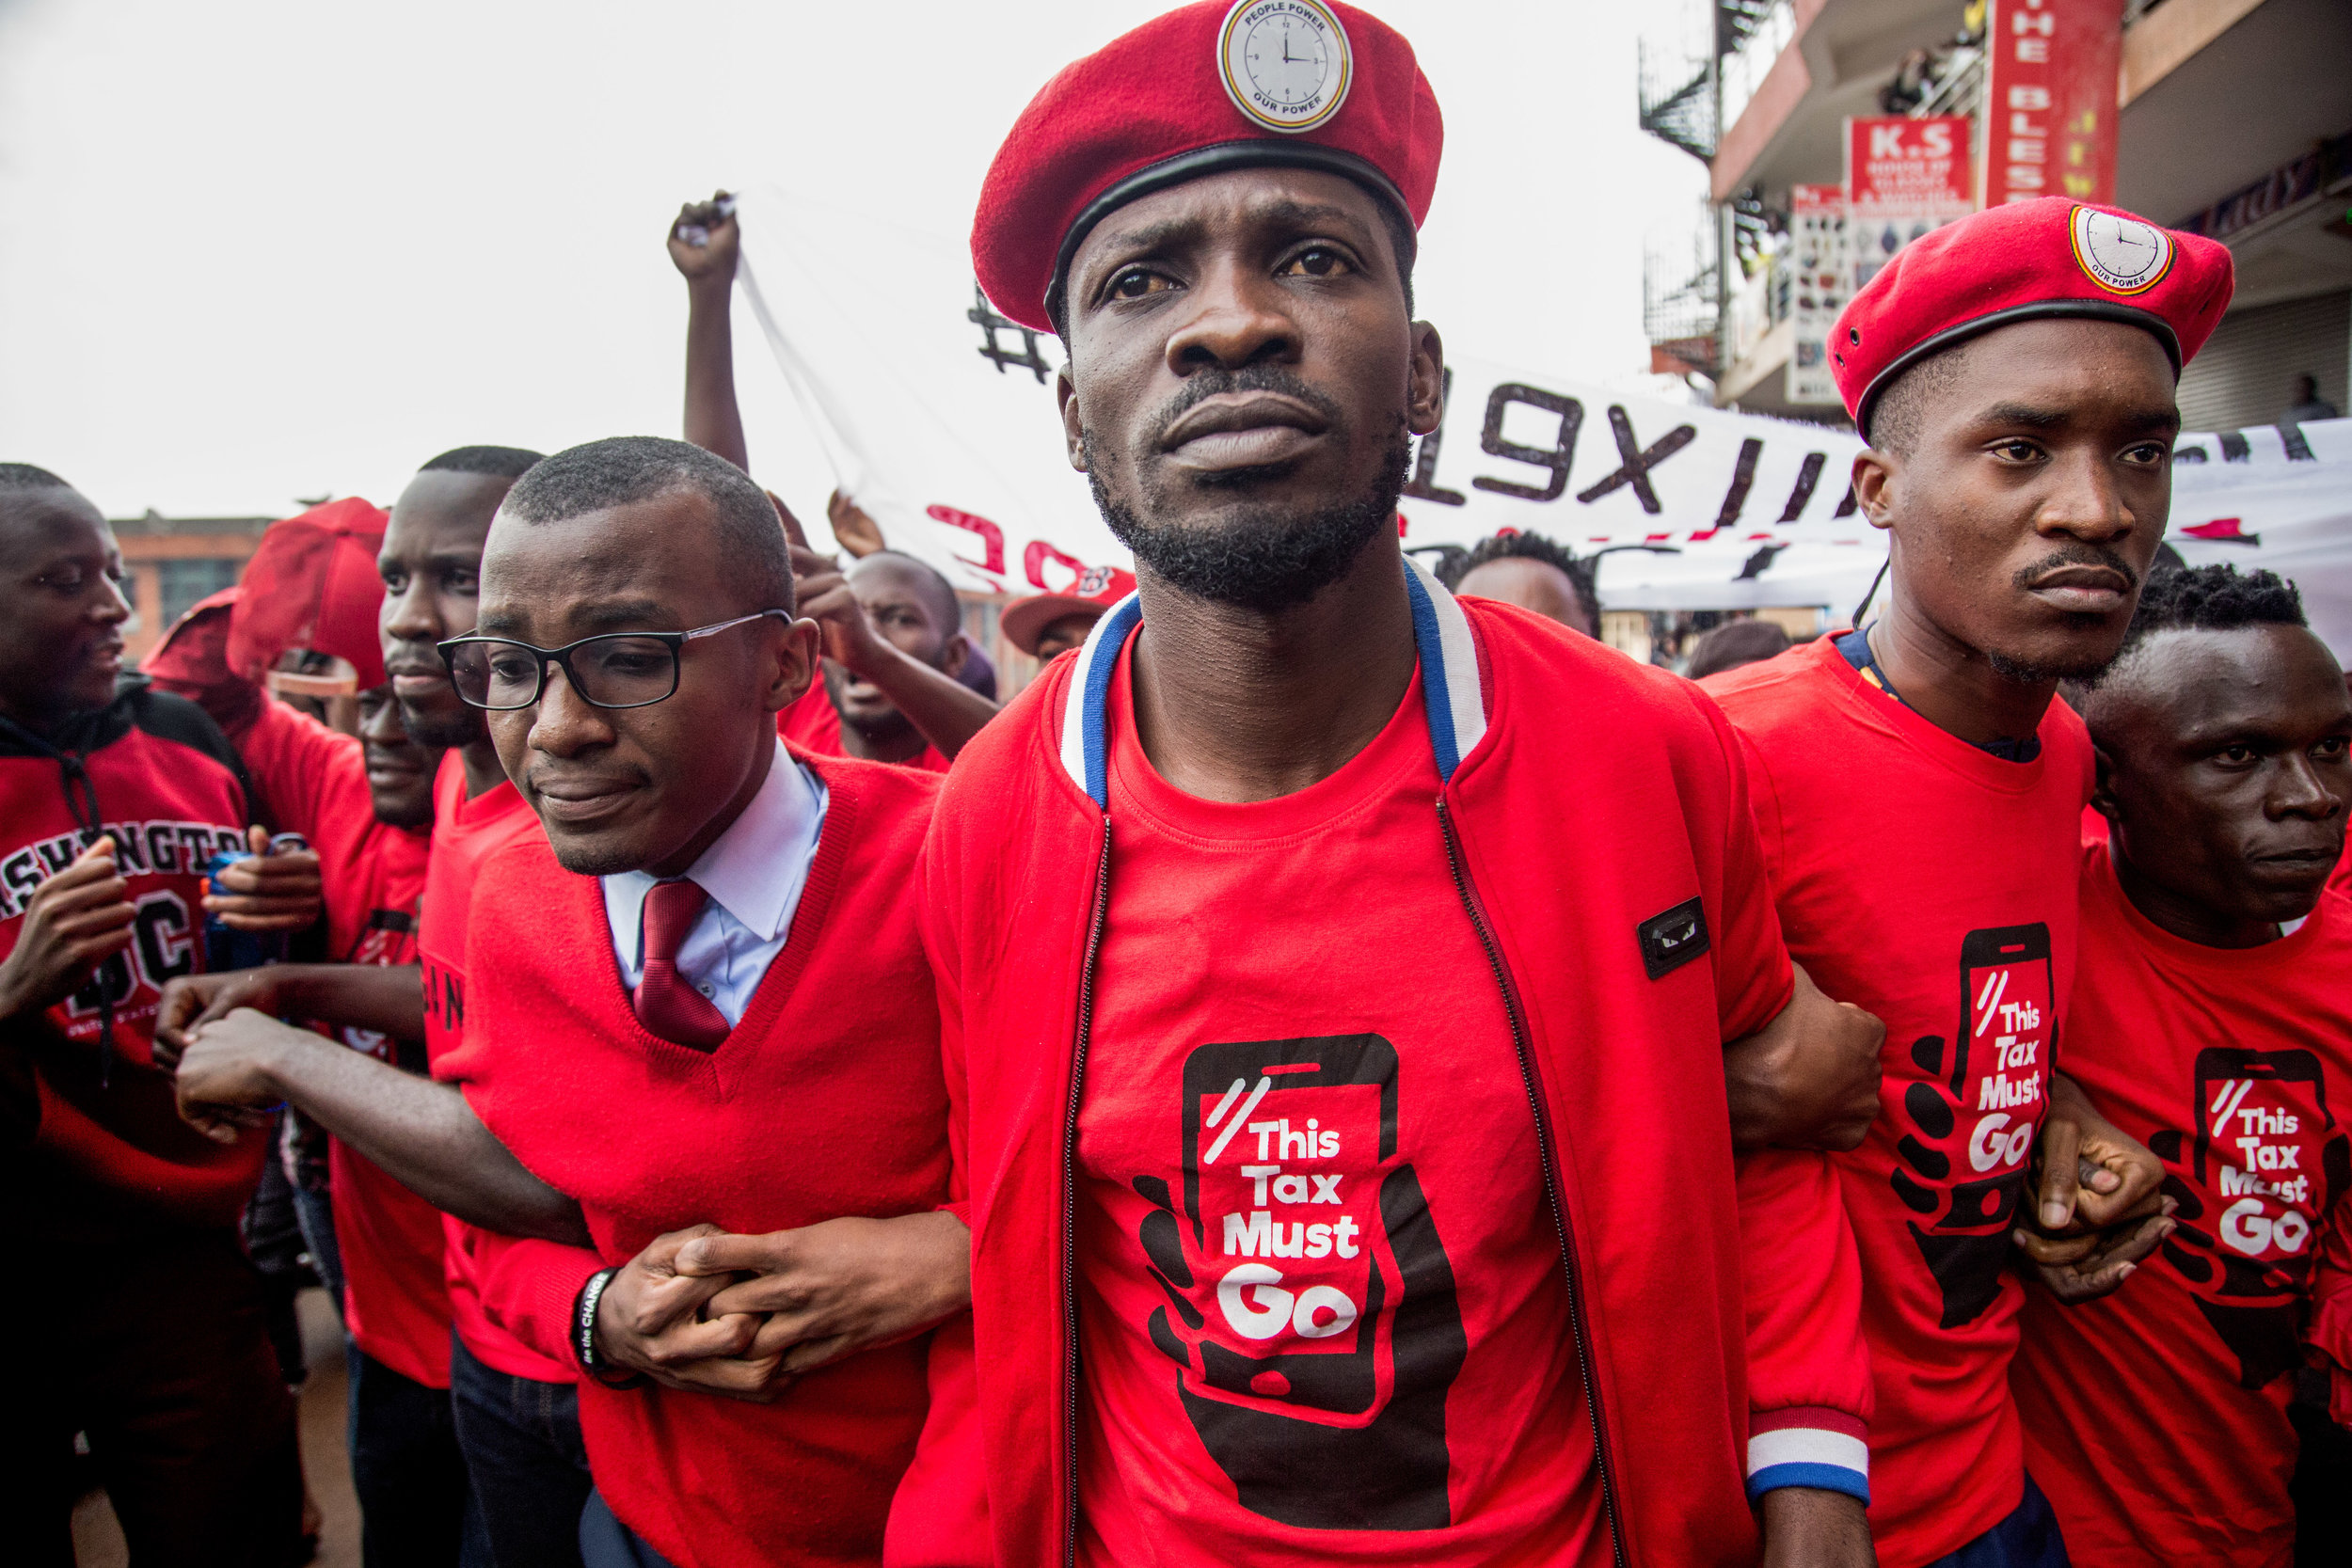 Opposition MP Bobi Wine and supporters protest the newly imposed social media tax in Kampala // AFP 07.2018